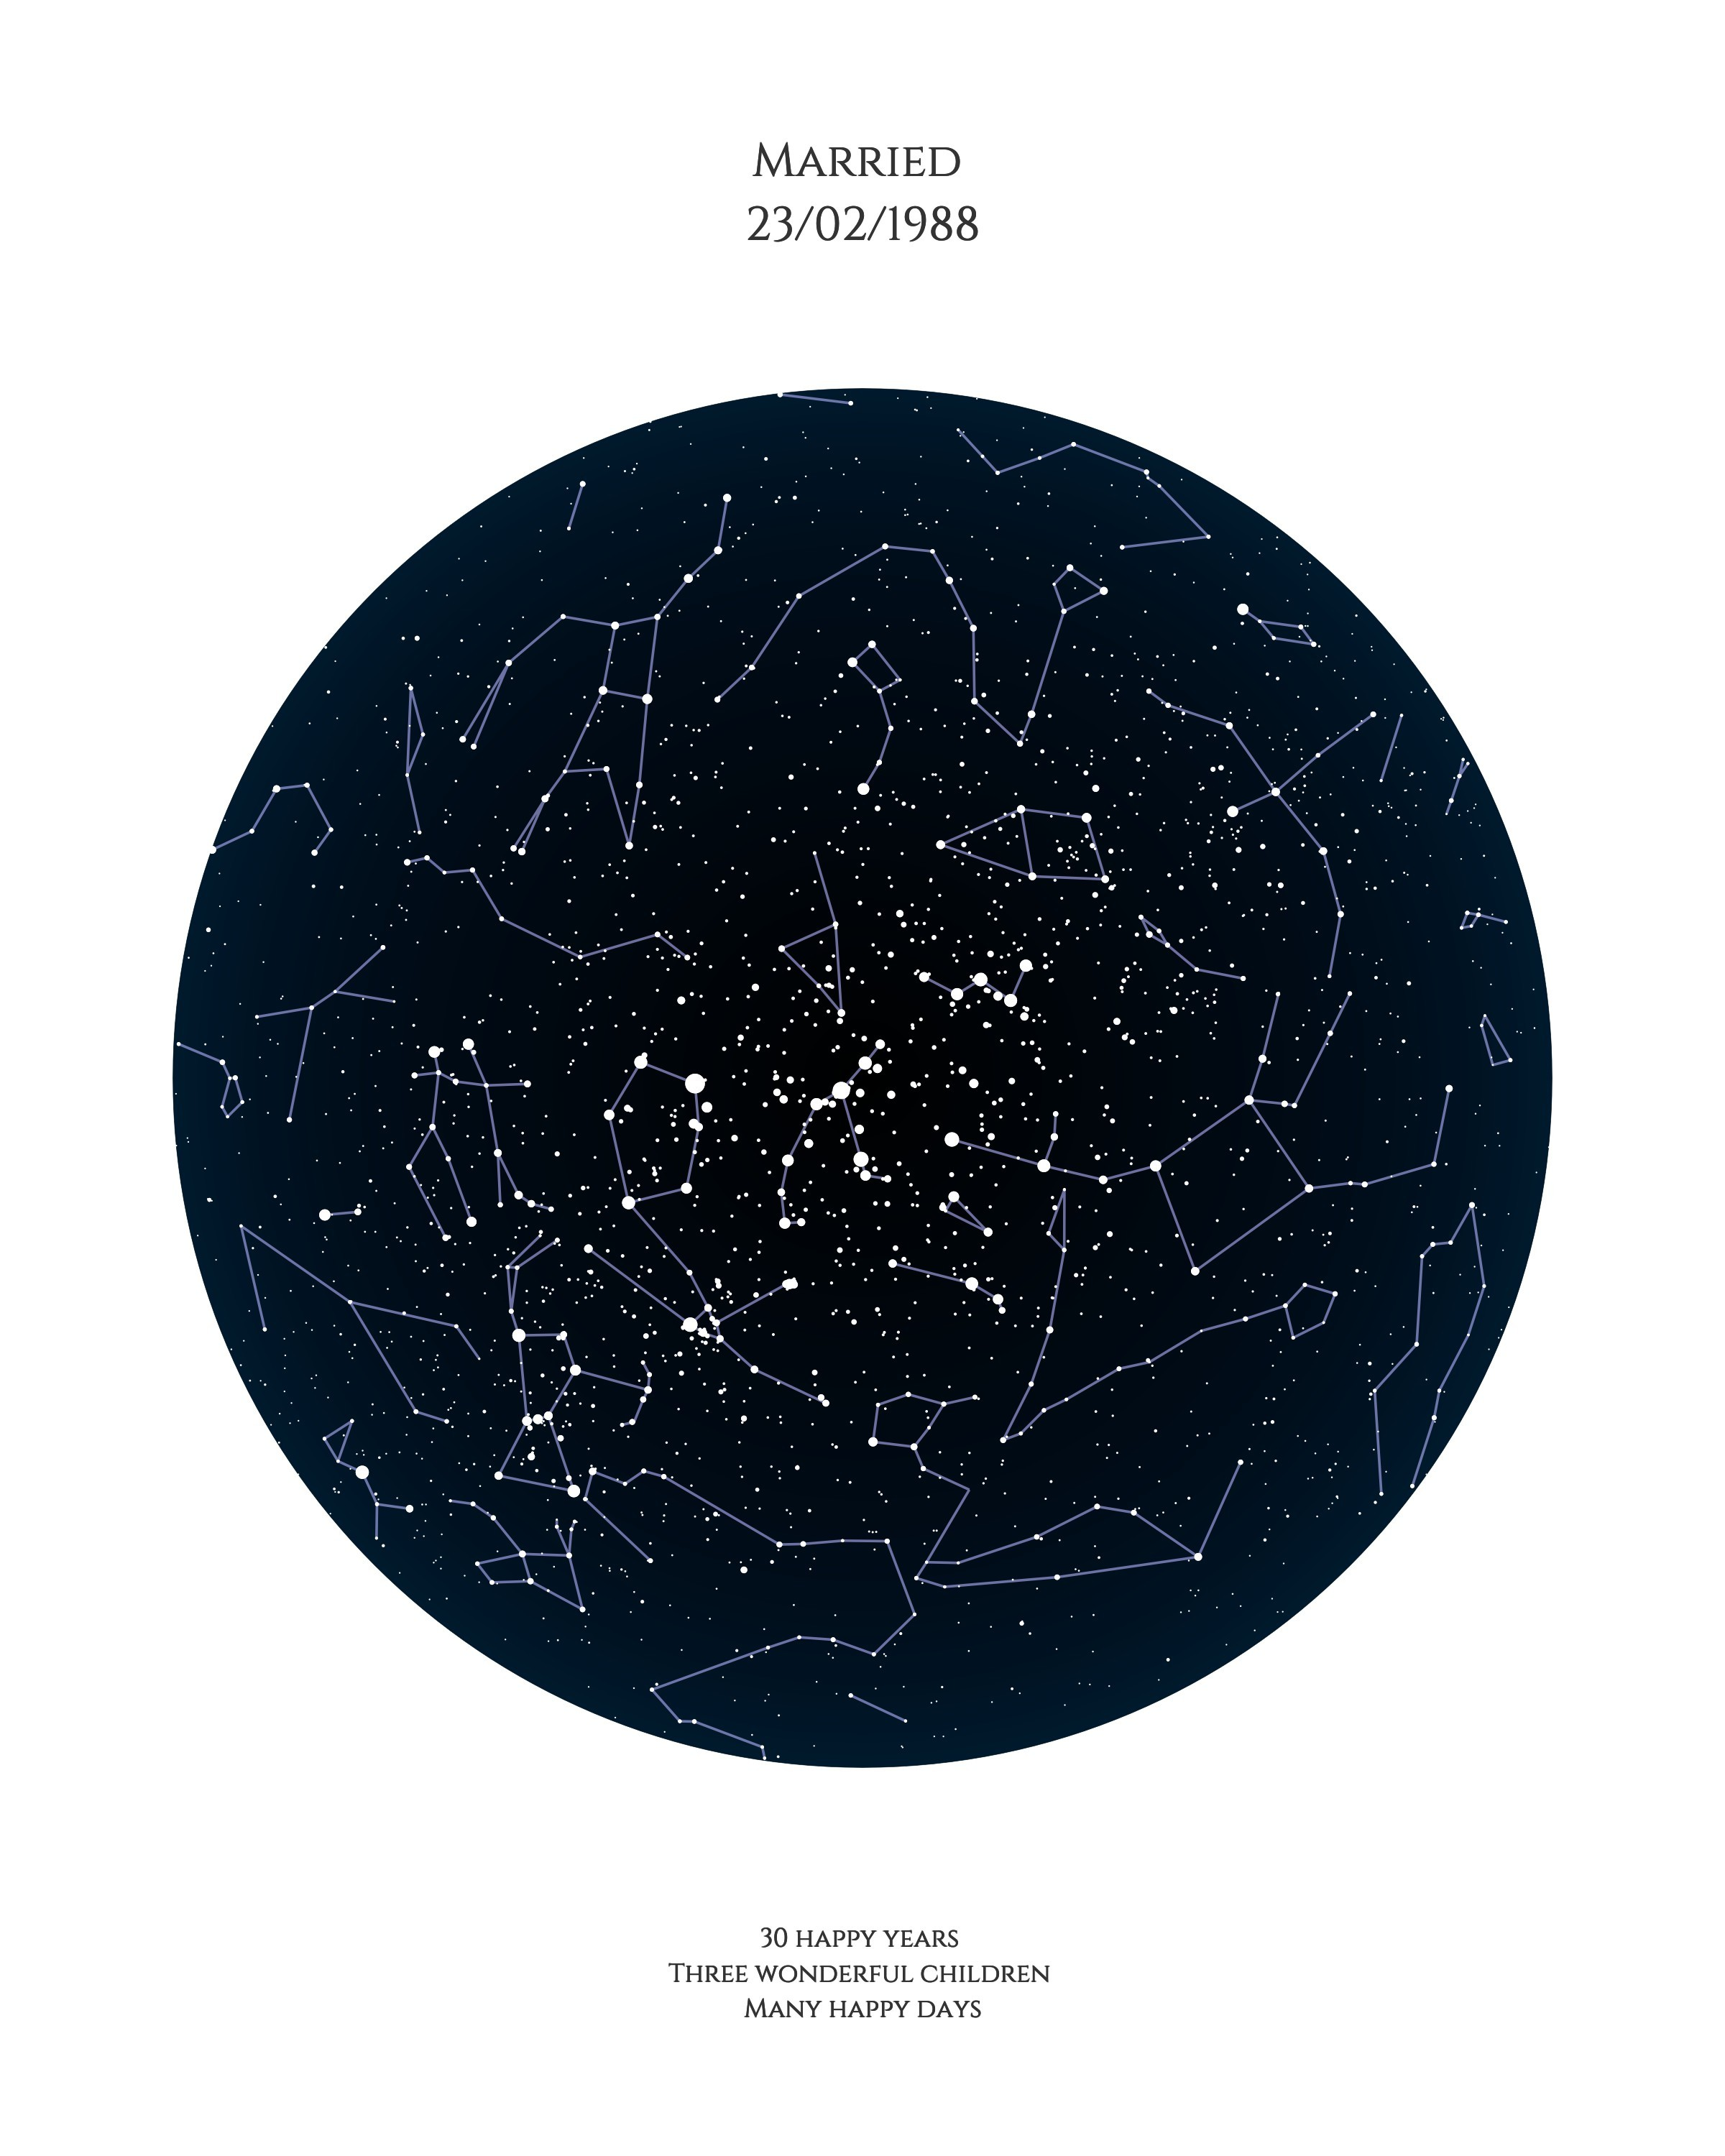 Star map - Use our star map design to celebrate a special occasion which means a lot to mum. As well as capturing the constellations in the sky,you can personalise this design with dates, quotes and captions for a meaningful Mother's Day gift.